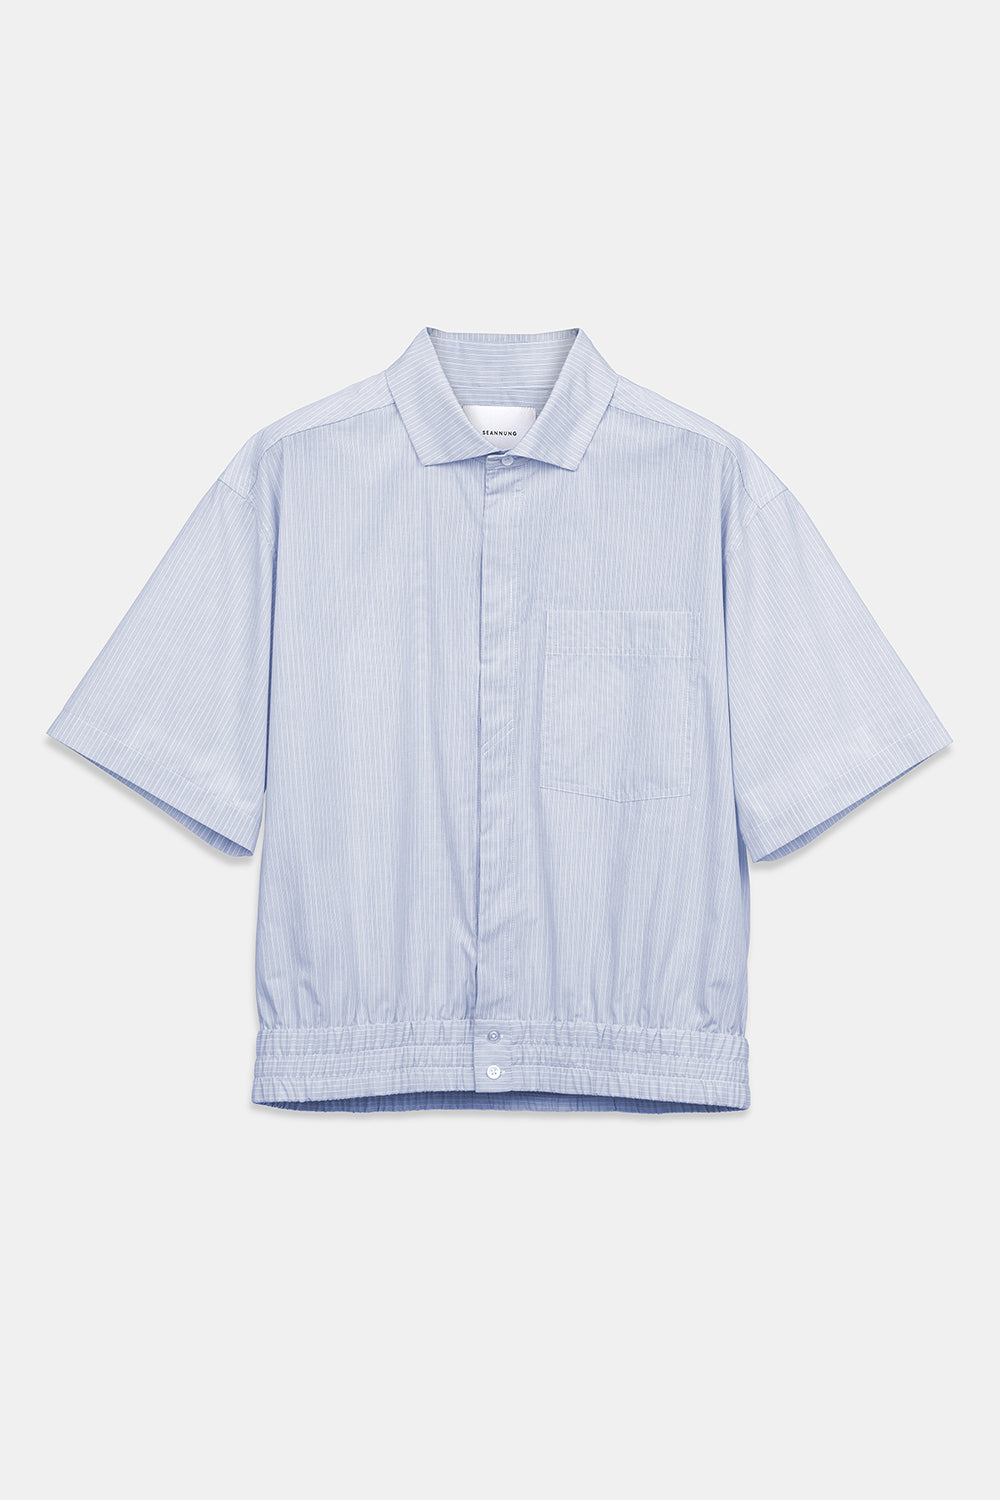 SEANNUNG - 條紋短袖襯衫 STRIPED PATTERN SHIRT WITH SHORT SLEEVE - Men